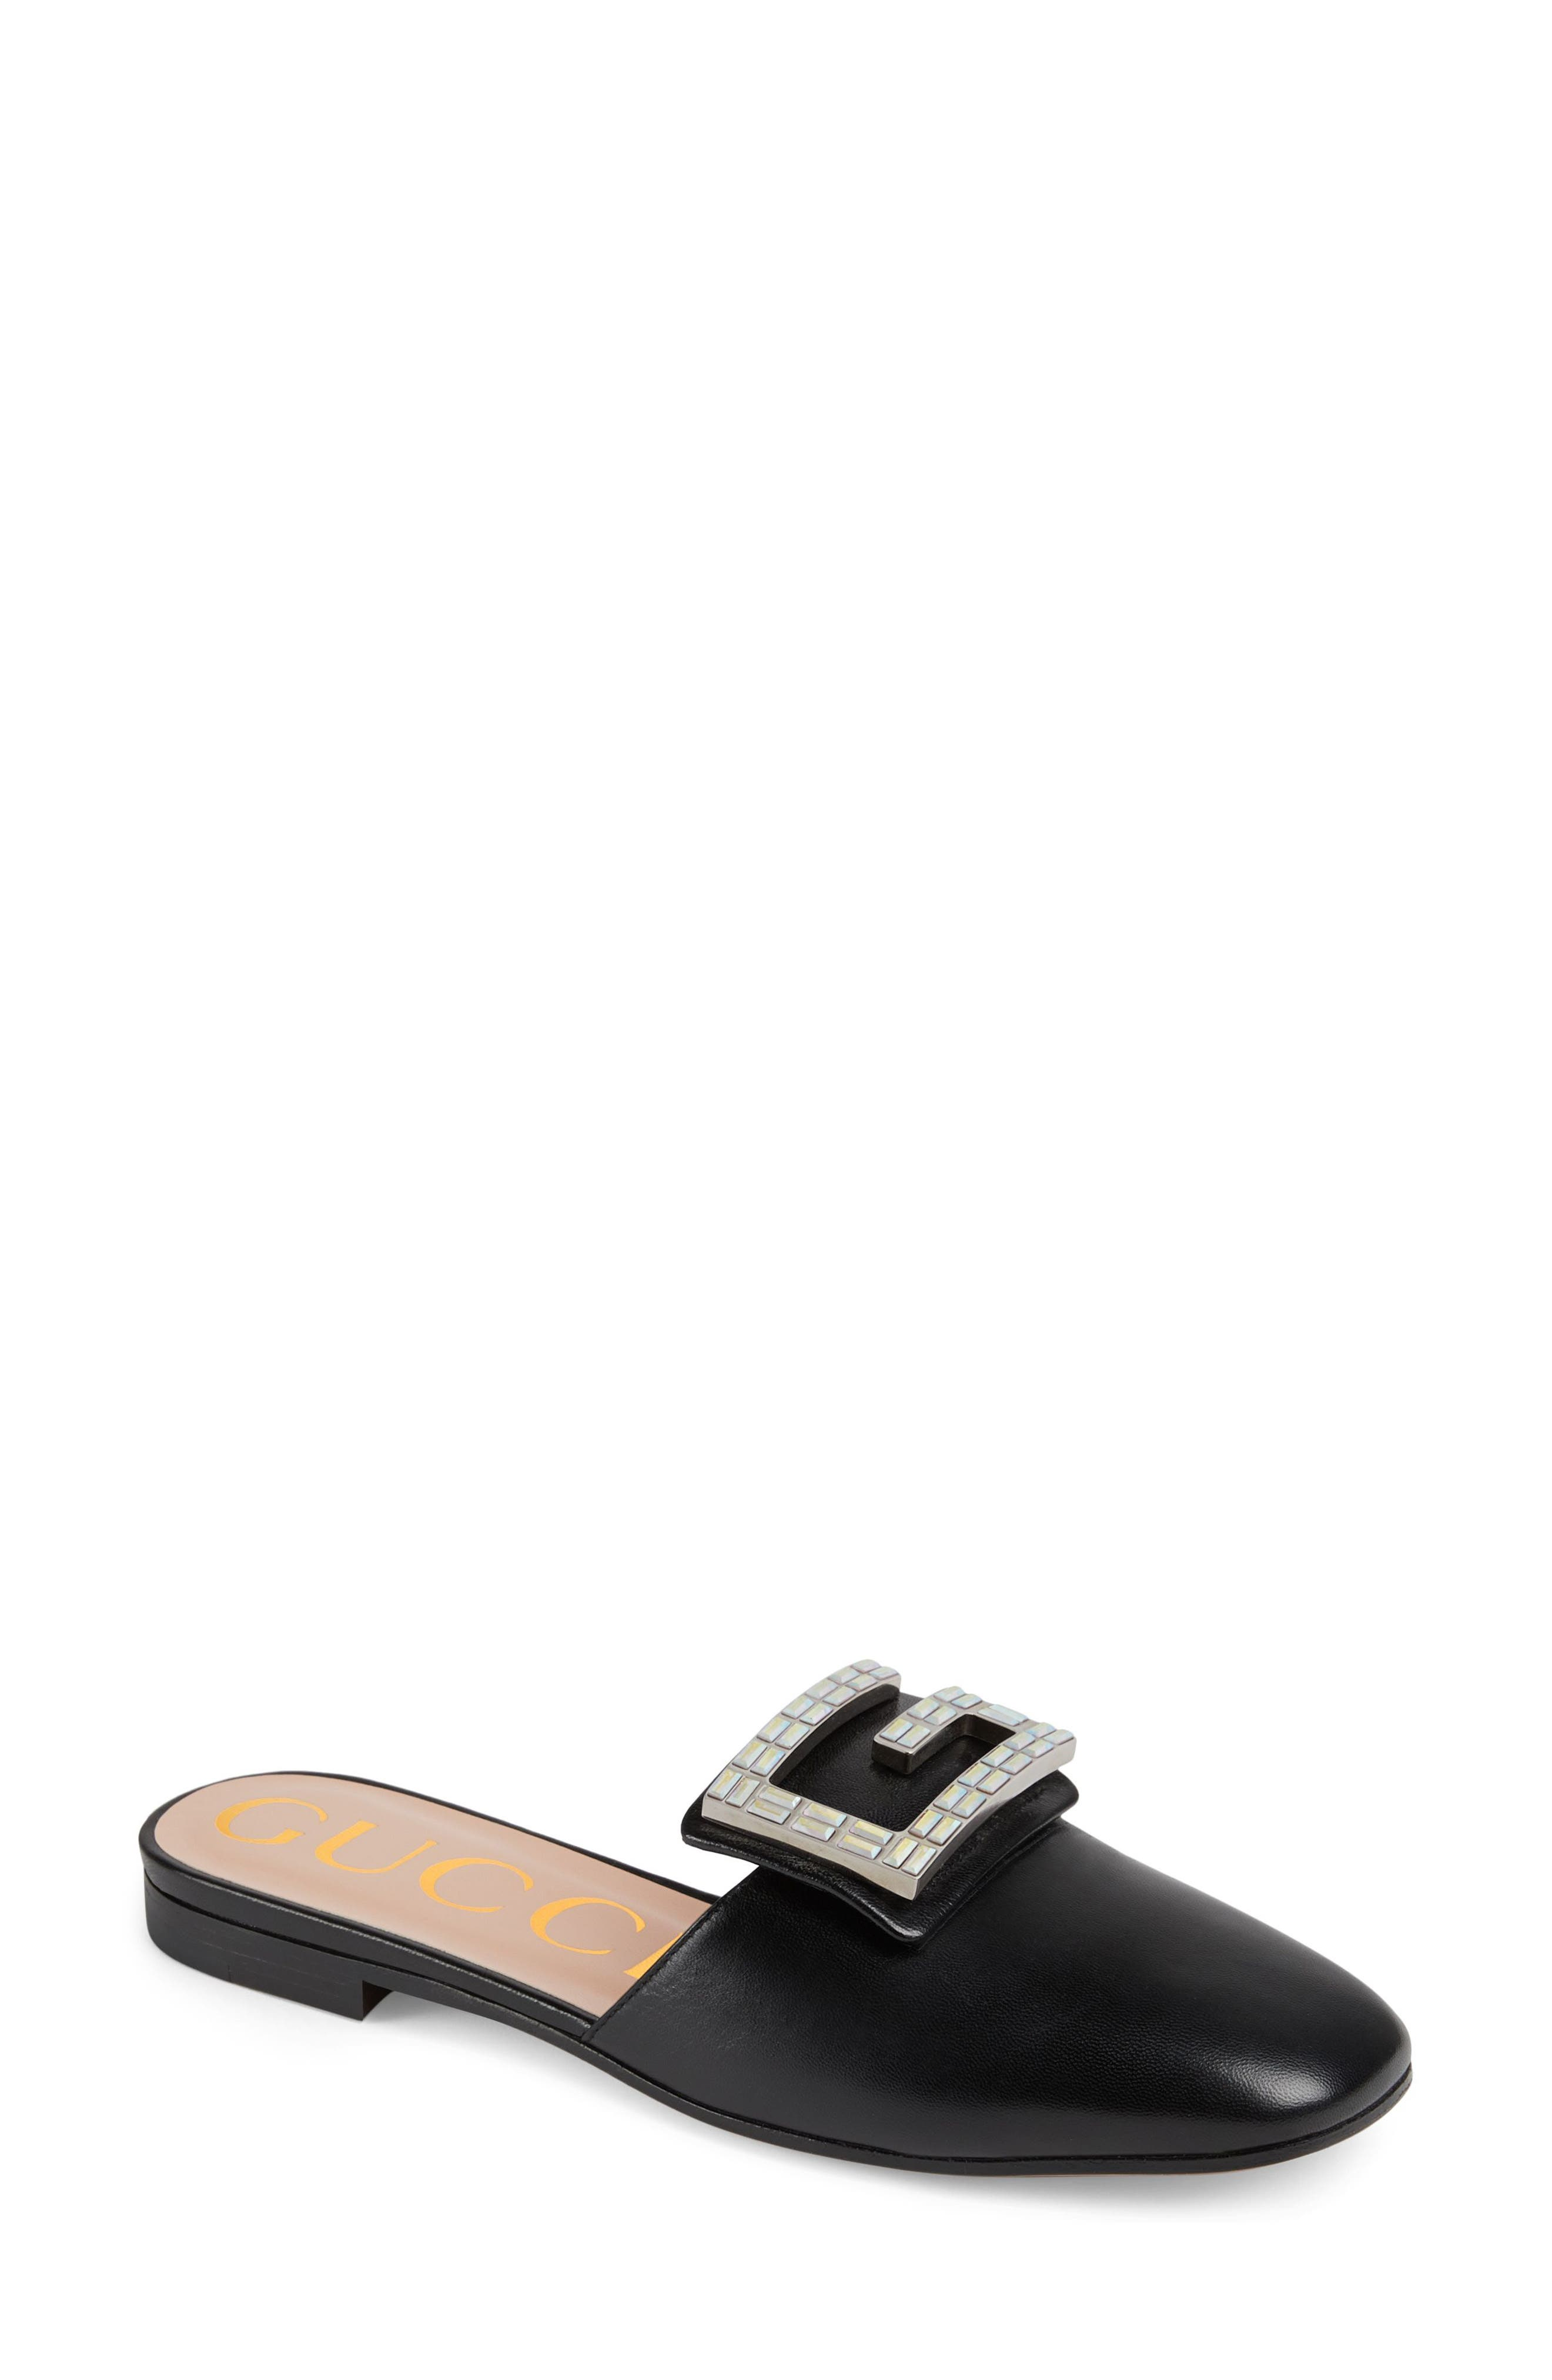 GUCCI Madelyn Mule, Main, color, BLACK